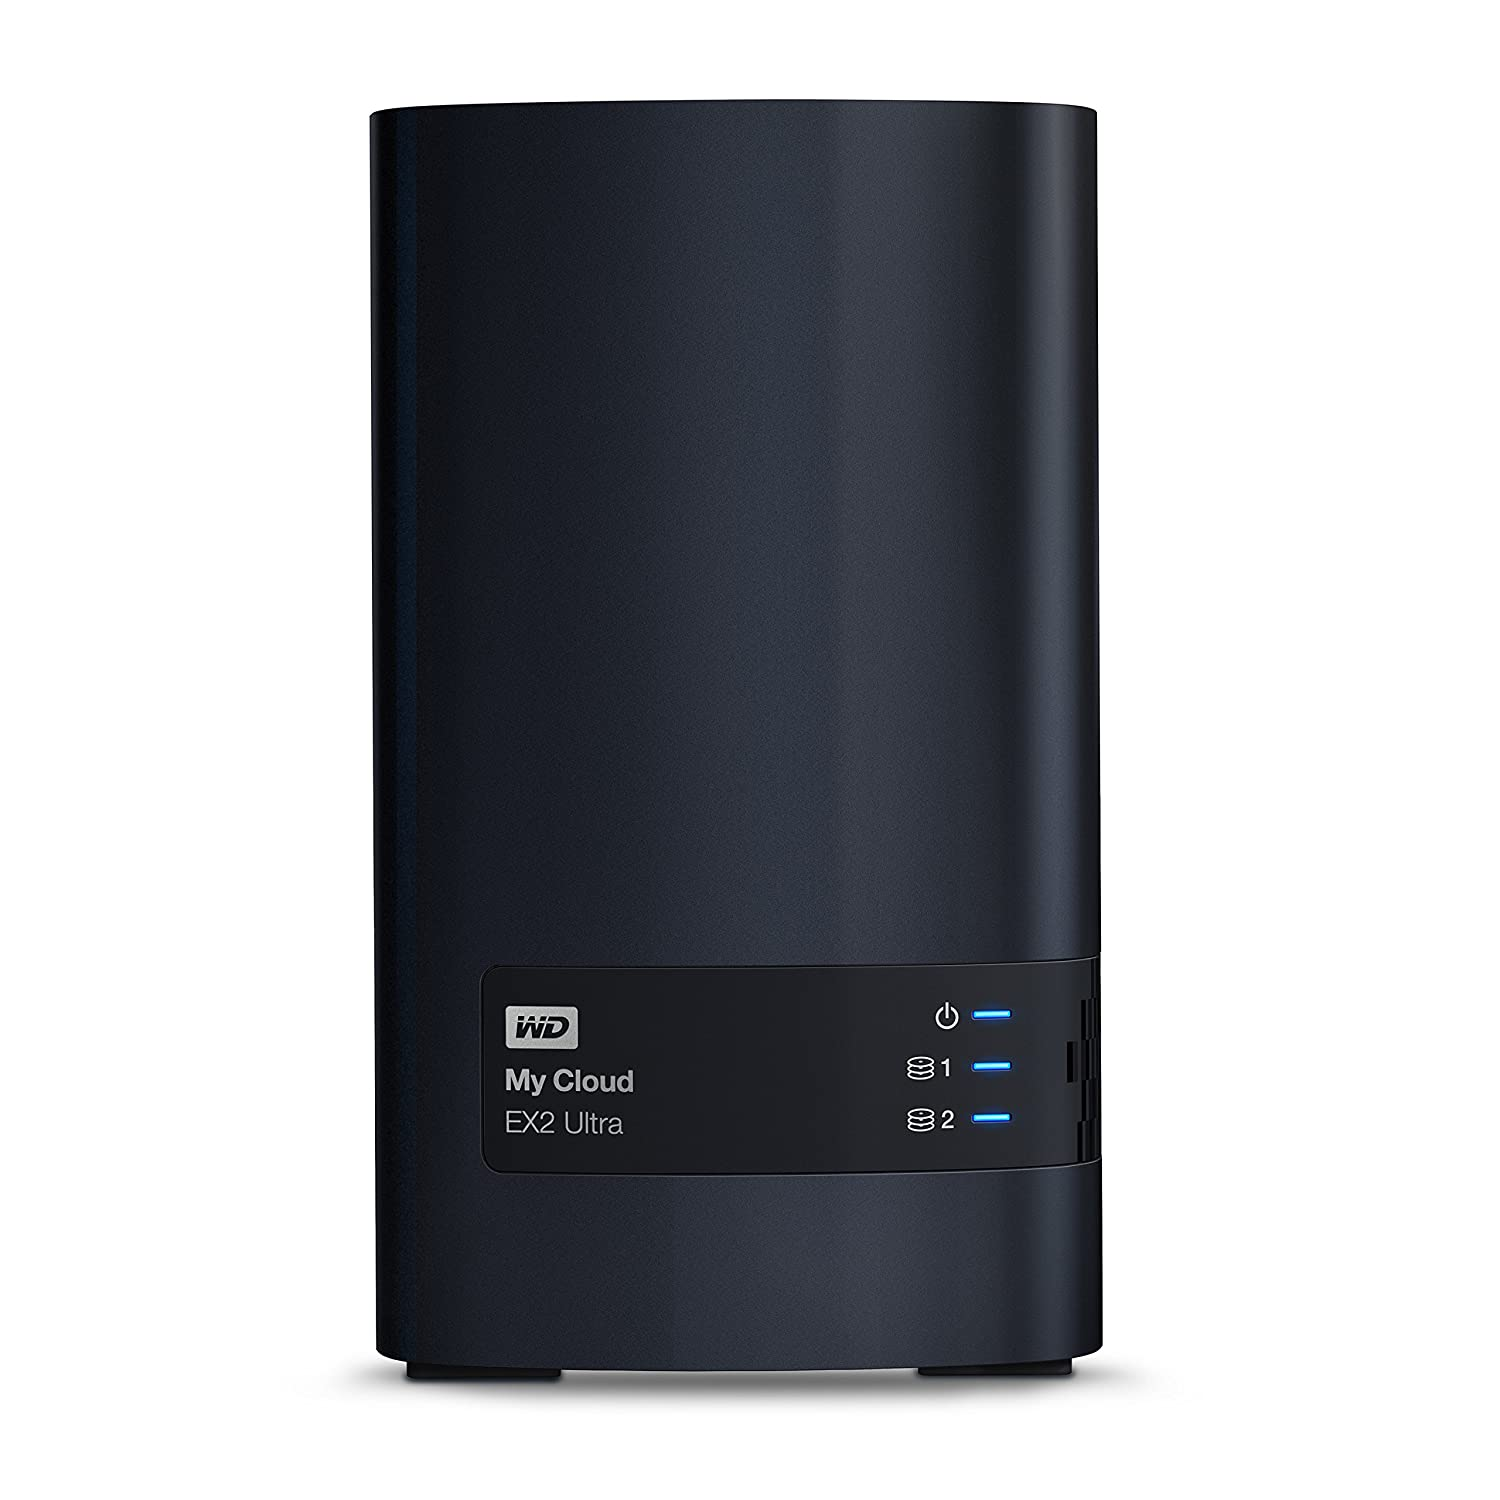 Western Digital Diskless My Cloud EX2 Ultra Network Attached Storage - WDBVBZ0000NCH-NESN